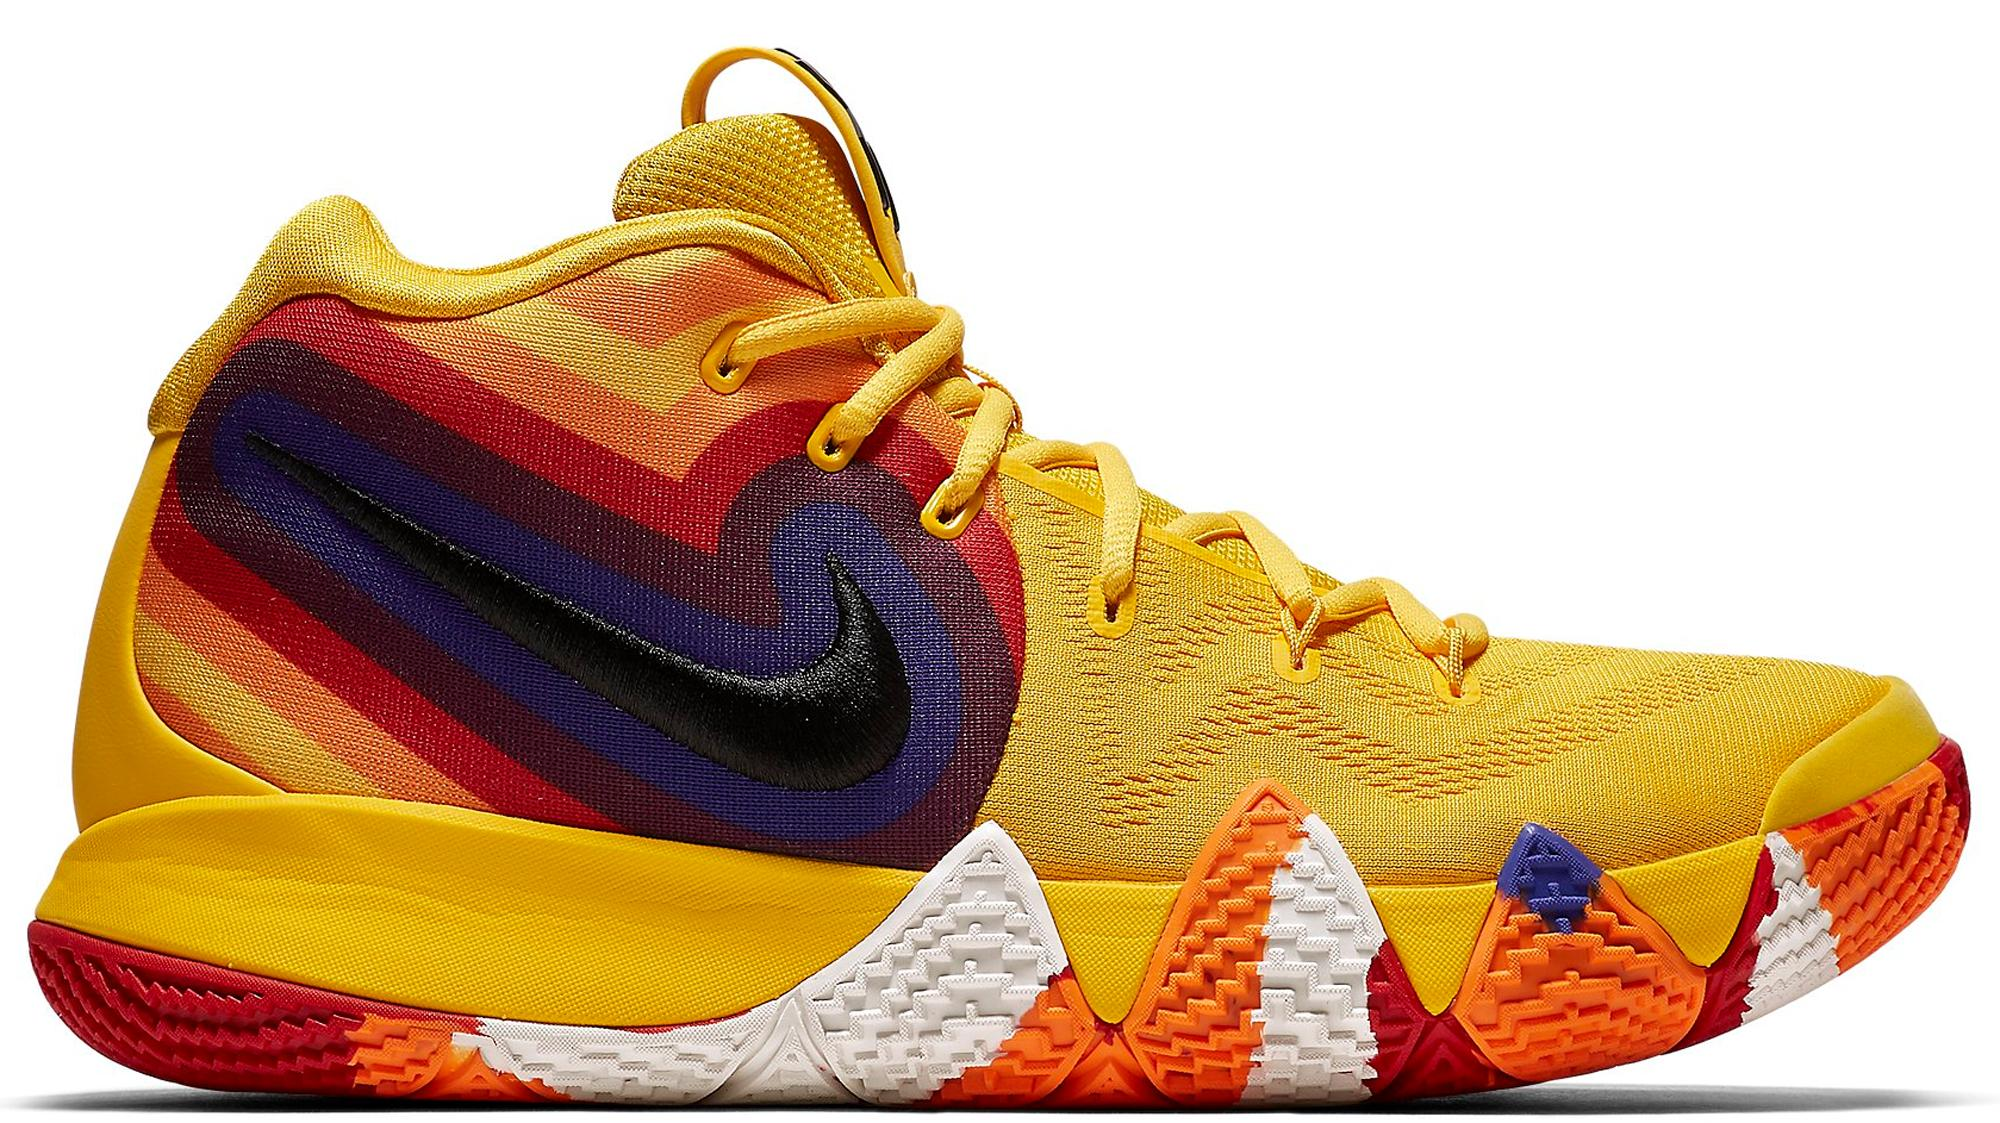 on sale dd4df 853a5 Men's Yellow Kyrie 4 '70s' Shoes - Size 13